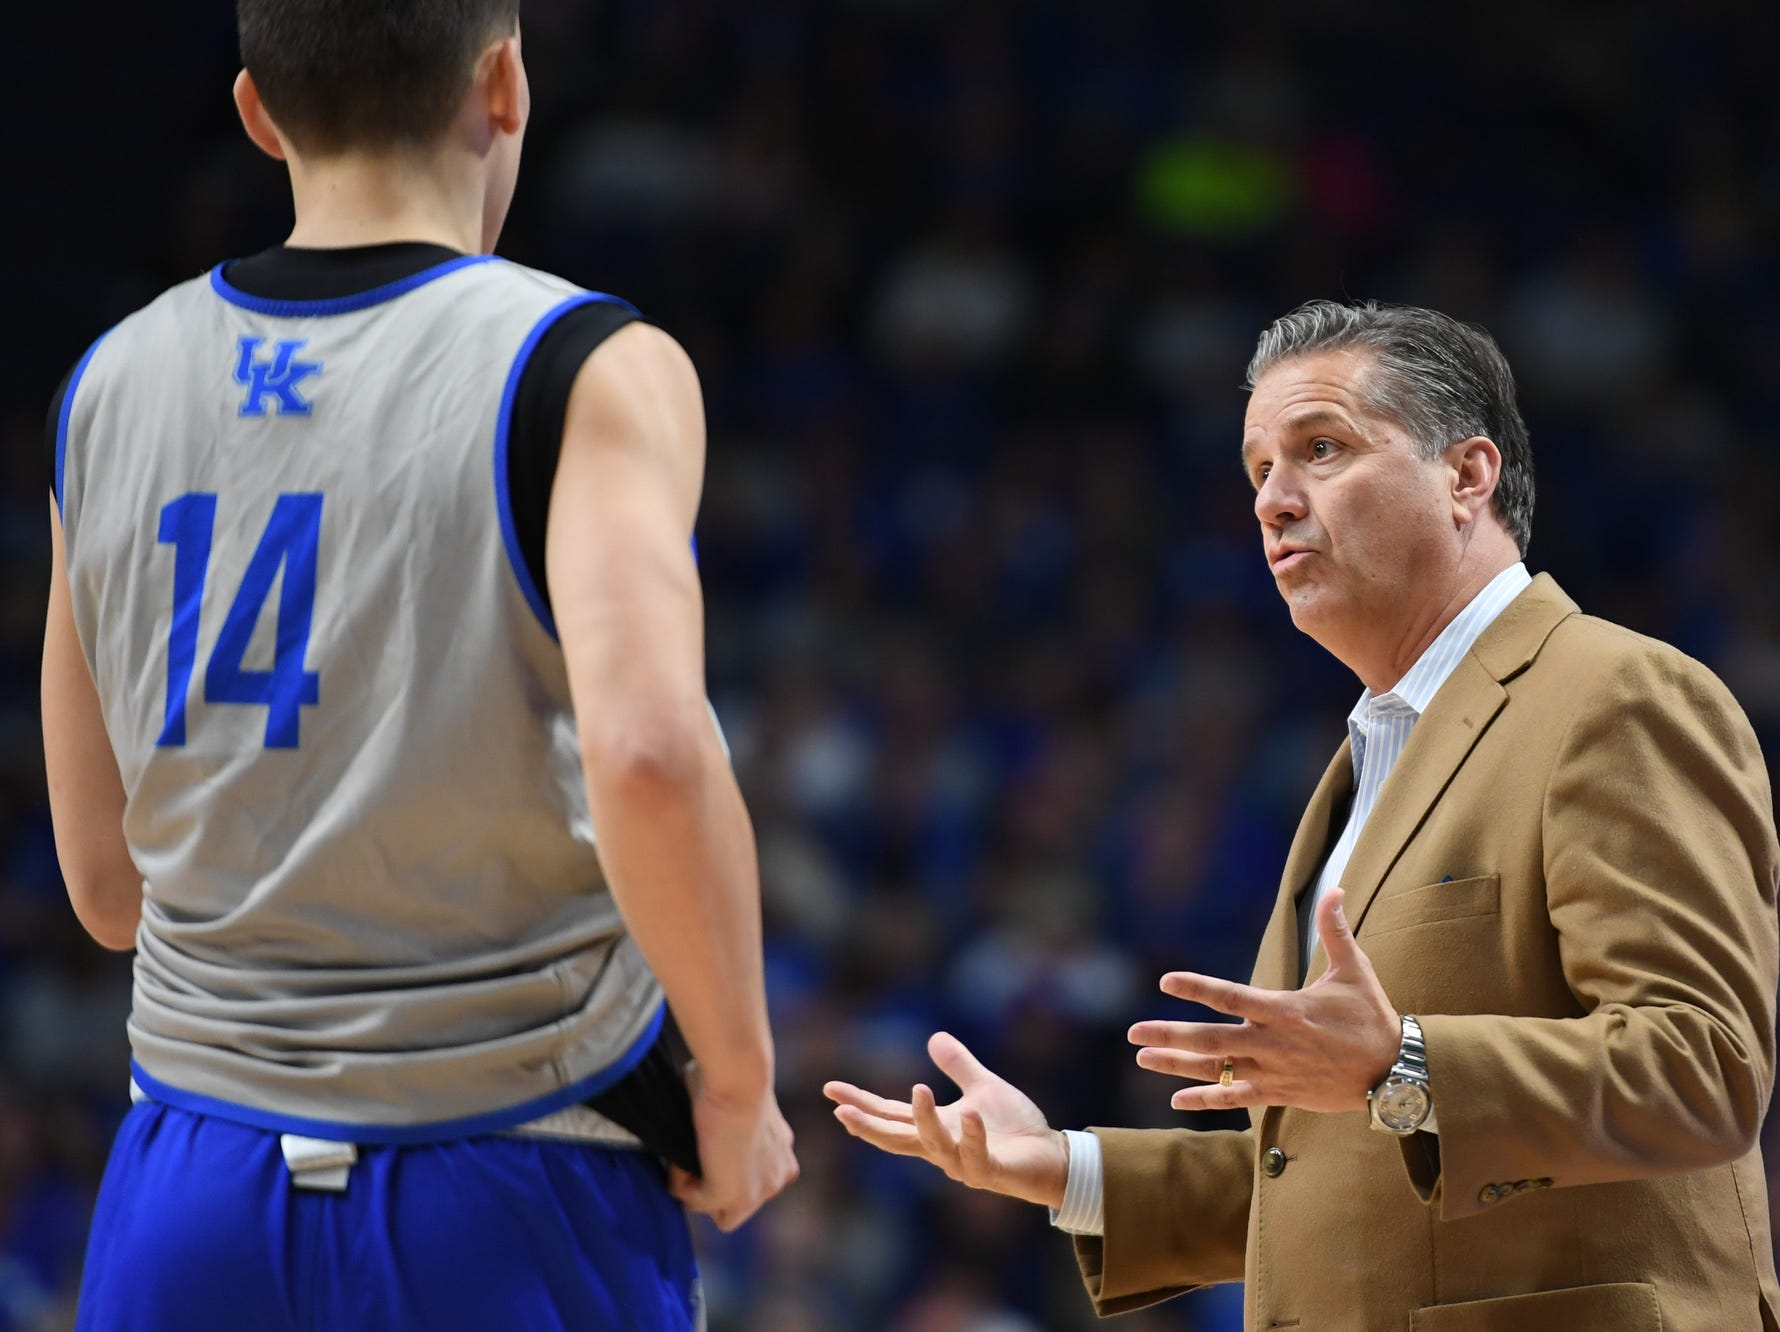 UK head coach John Calipari talks to players on the court during the University of Kentucky mens basketball Blue/White game at Rupp Arena in Lexington, Kentucky on Sunday, October 21, 2018.